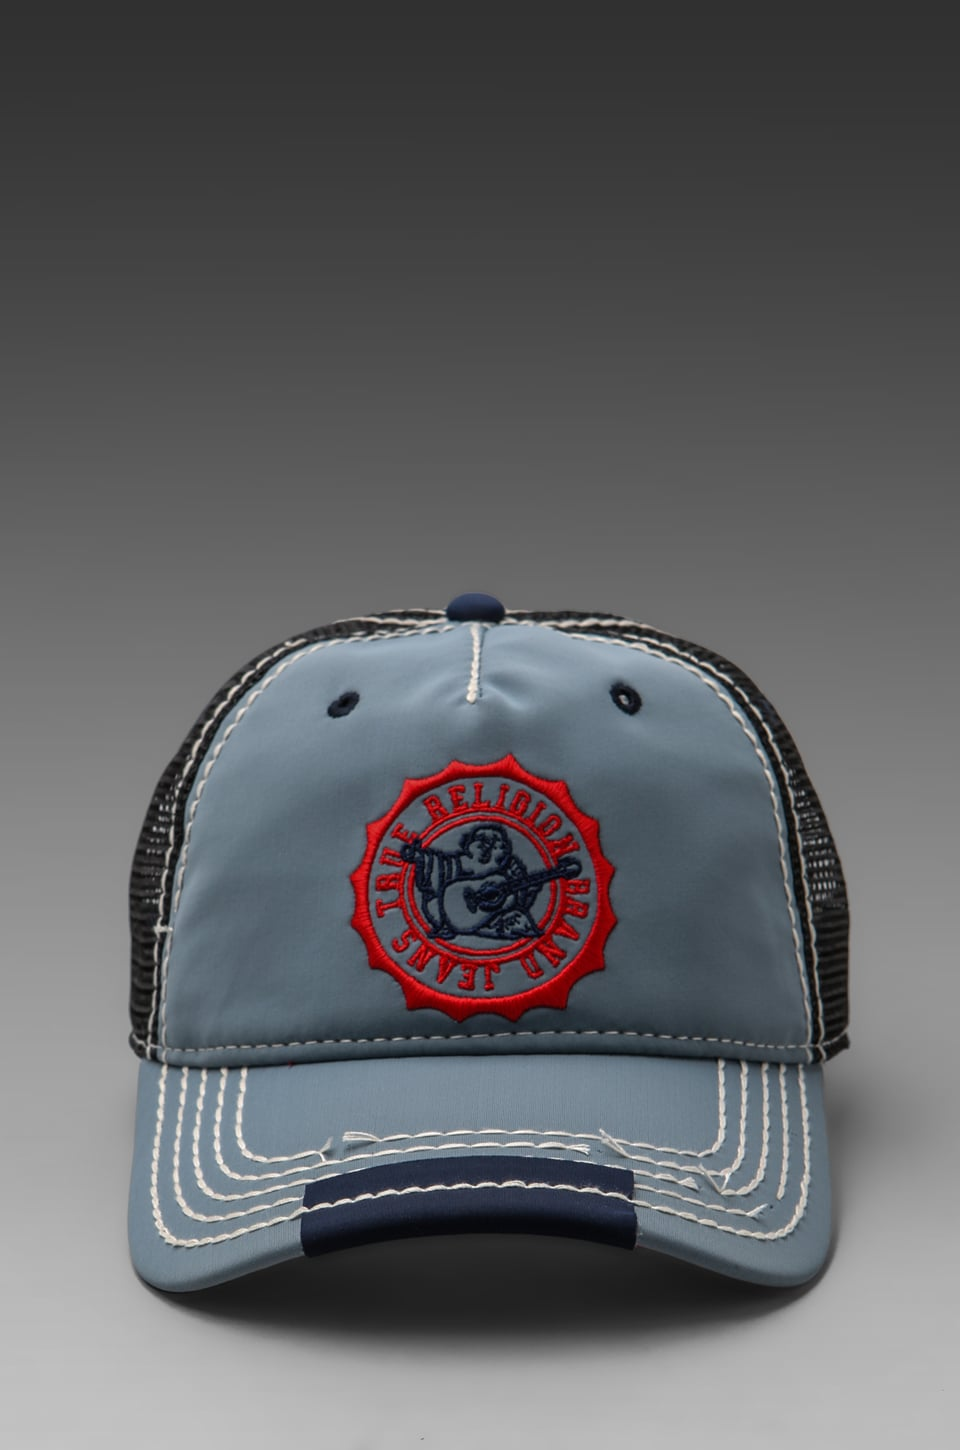 True Religion Neon Baseball Cap in Grey